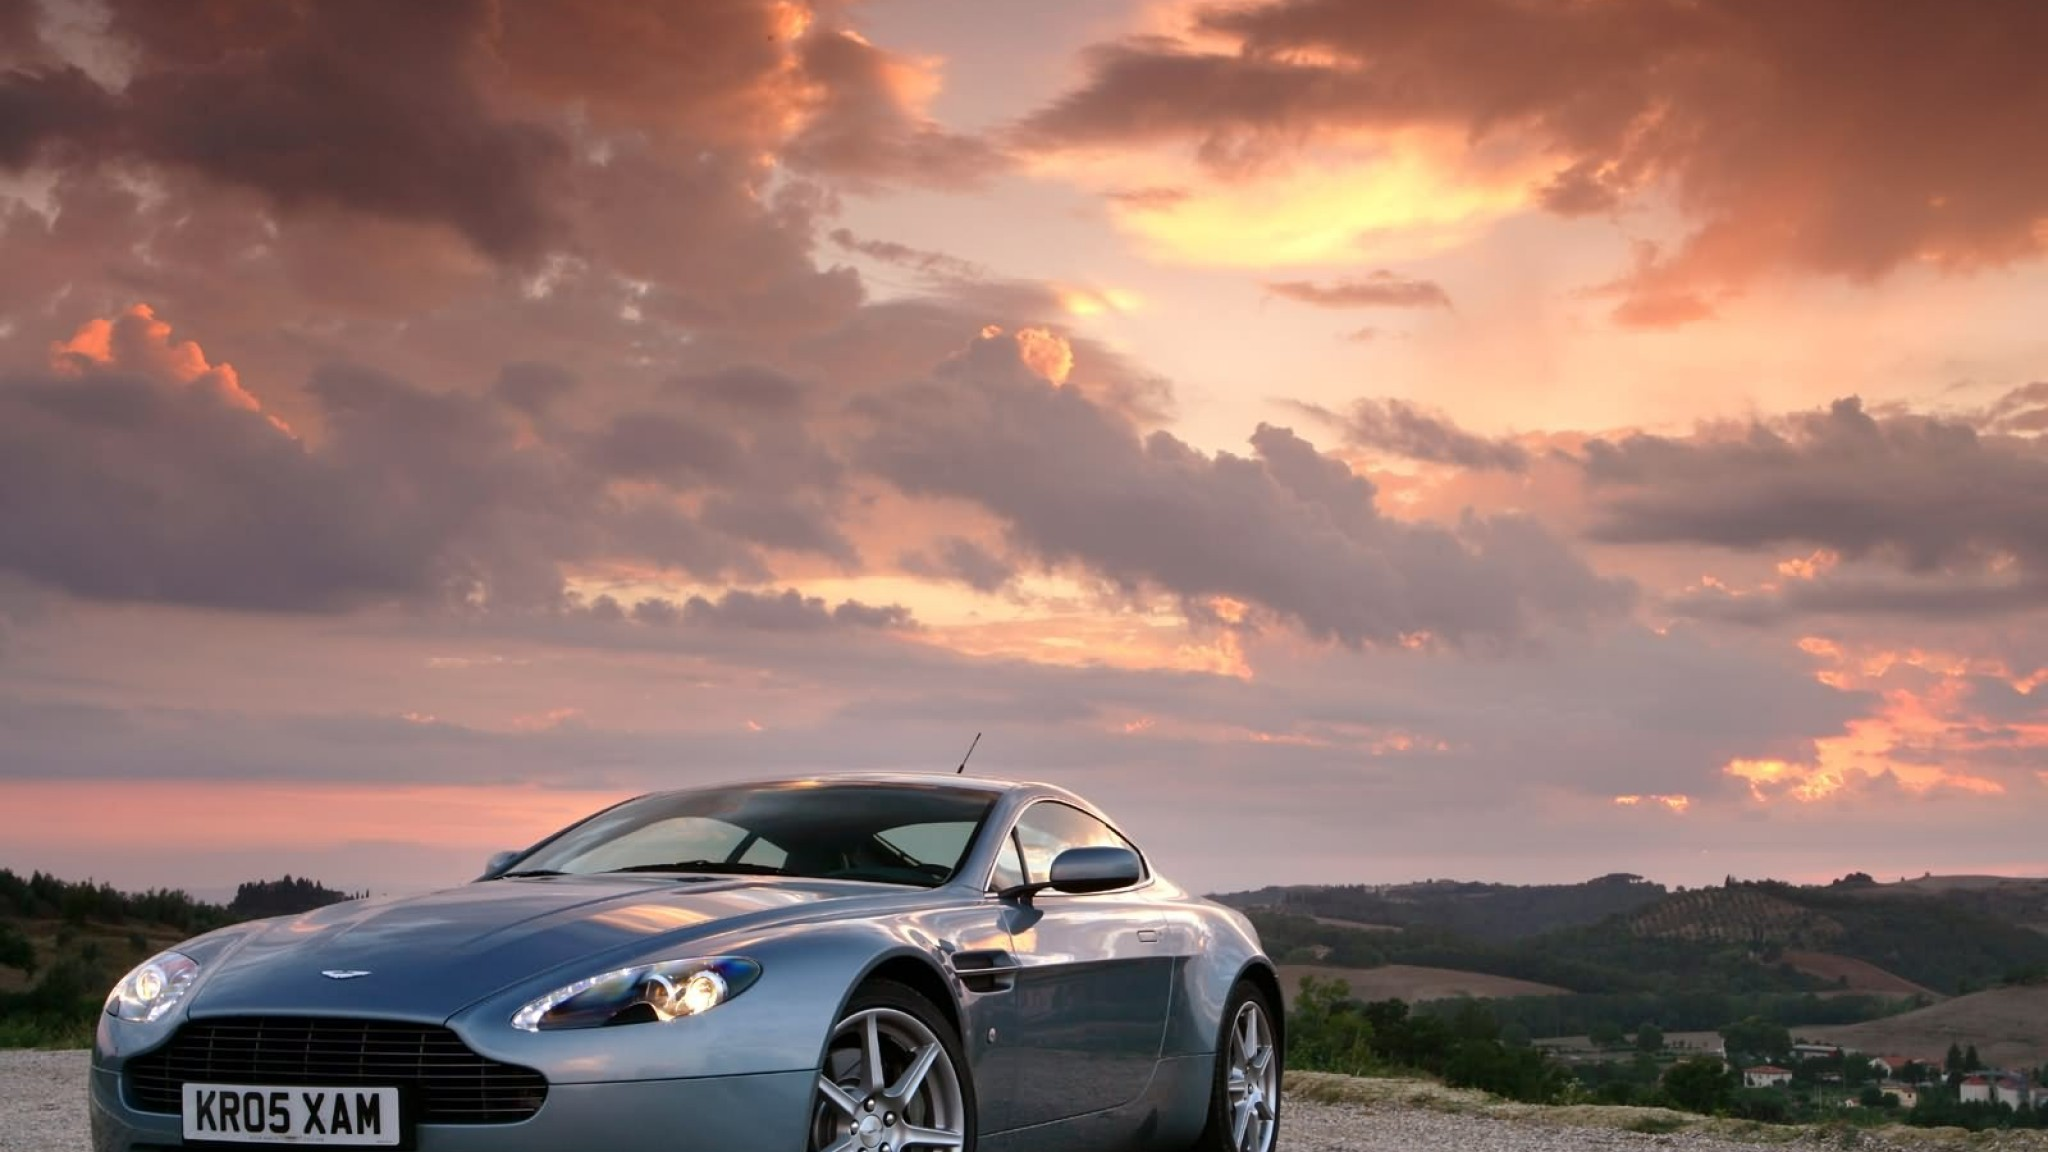 2006 Aston Martin V8 Vantage   nice view   Car  free HD Wallpaper